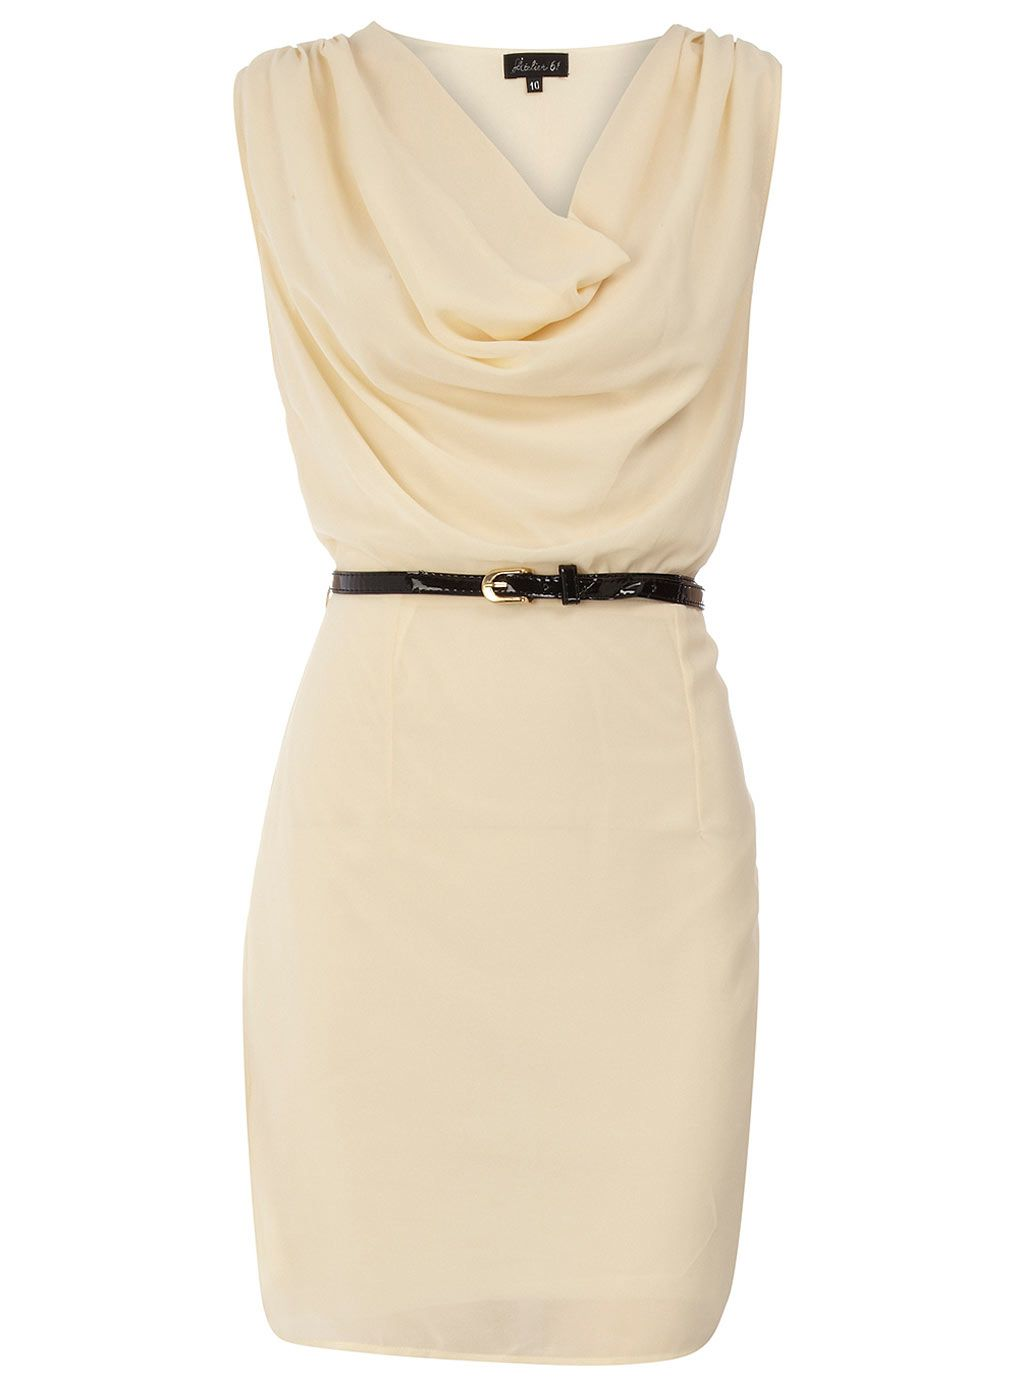 Dorothy Perkins Womens Cowl Neck Dress- Buy Cheap Recommend Cheap Price Store Outlet Original Cheap Geniue Stockist iBM9nLbXay